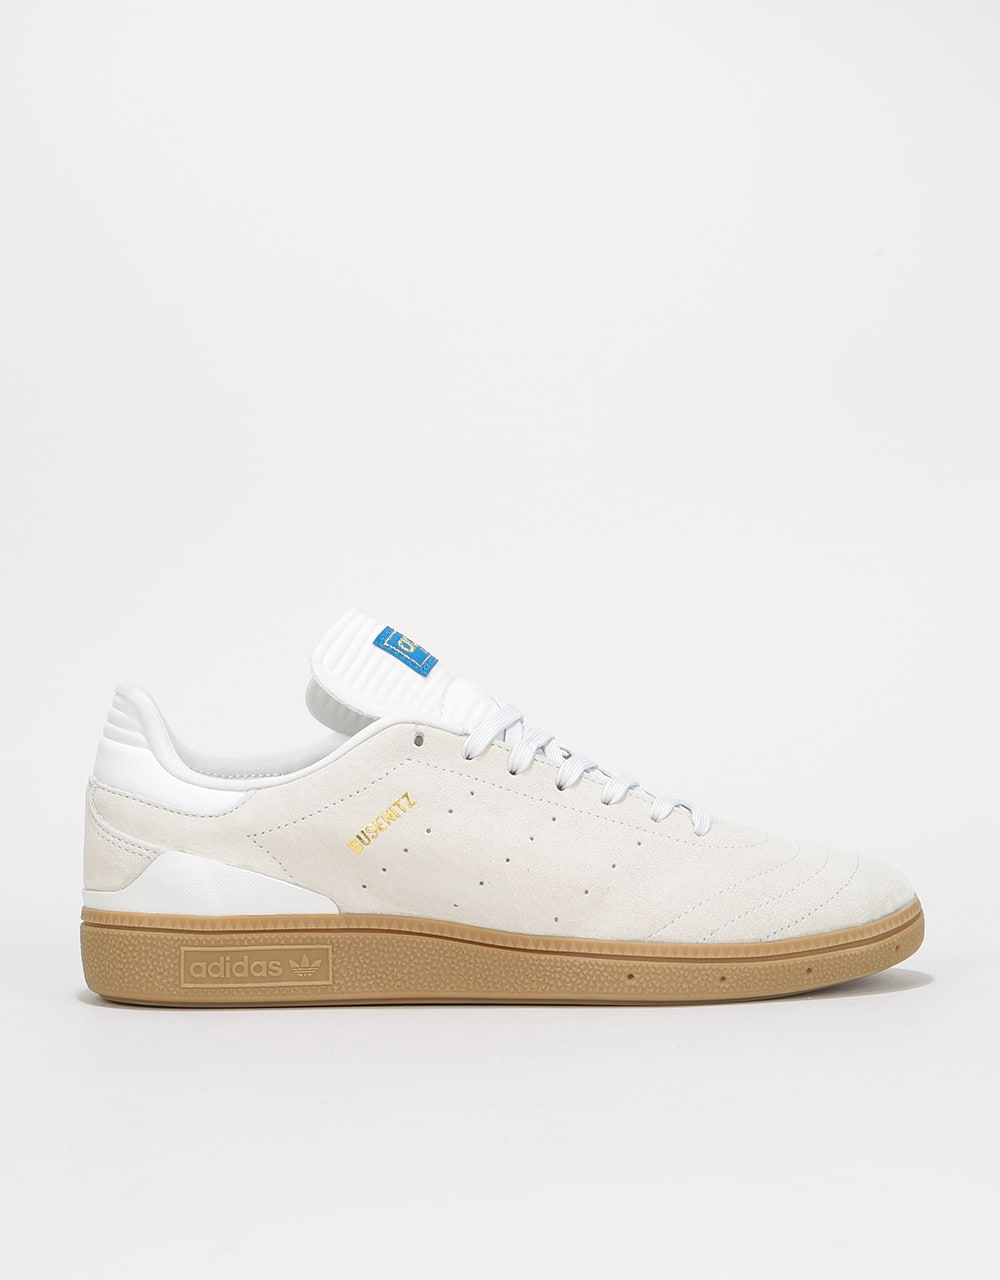 brand new 8f837 5400b Adidas Busenitz RX Skate Shoes - Crystal WhiteGumGold Metallic  Mens  Footwear  Trainers  Skate Shoes  Sneakers  Runners  Route One